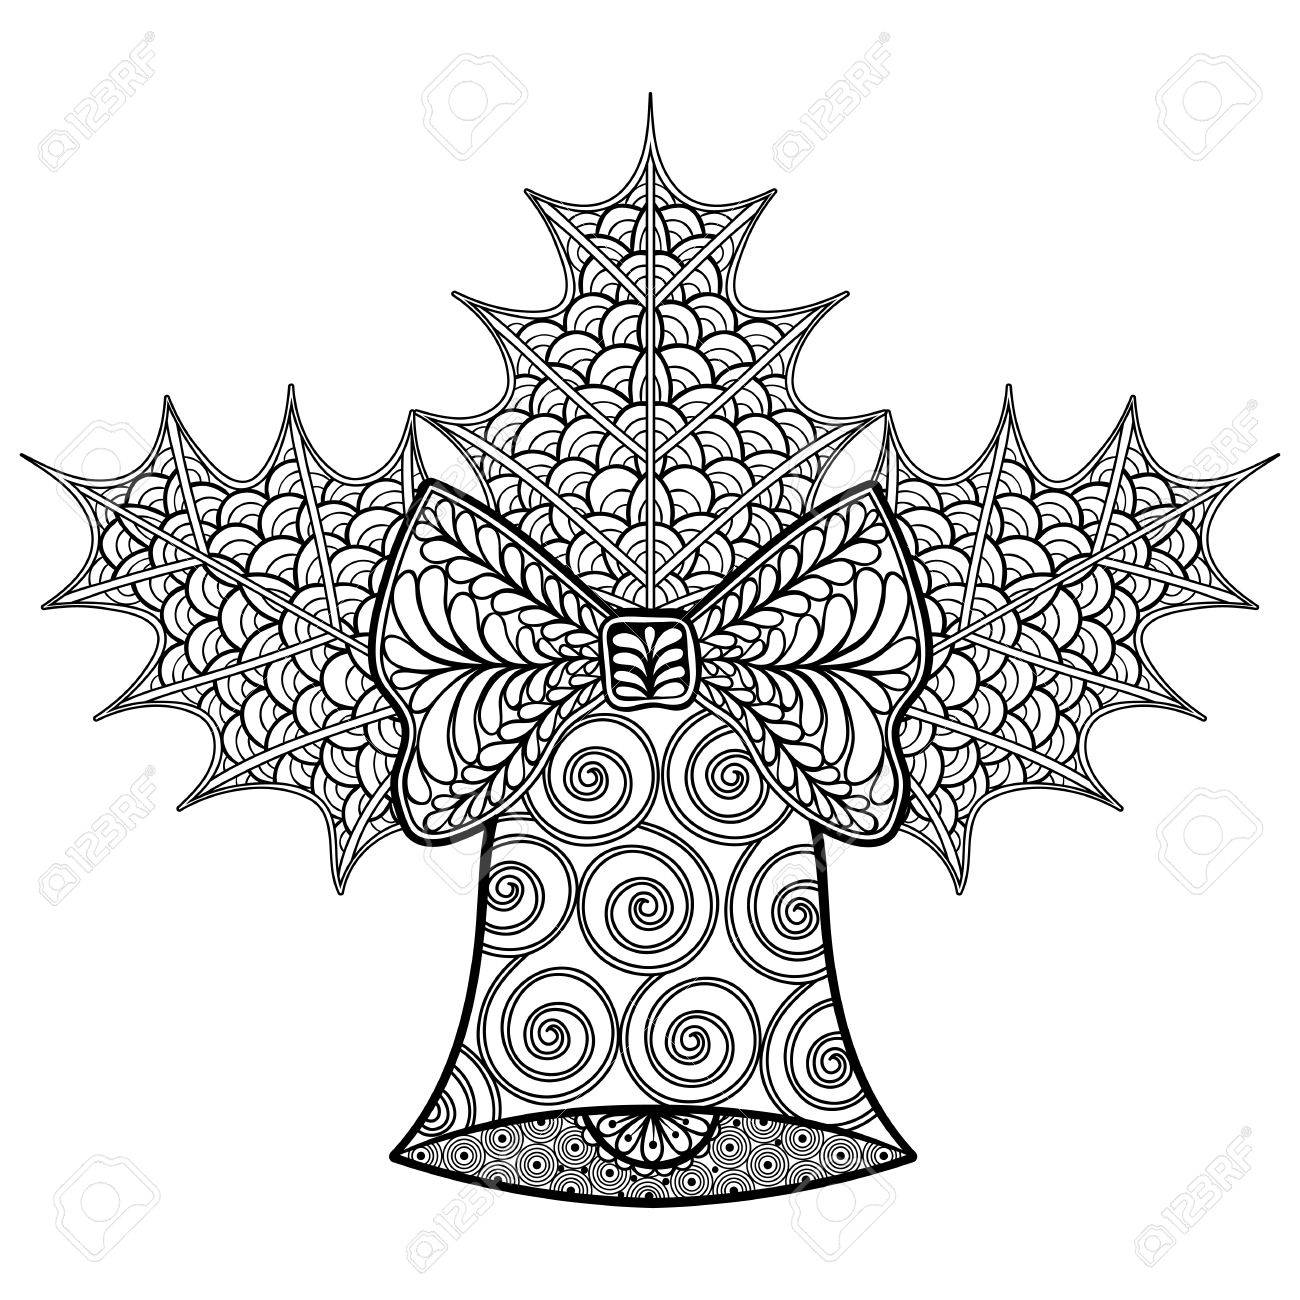 coloring pages with christmas decorative bell and mistletoe zentangle patterned illustration for adult anti stress